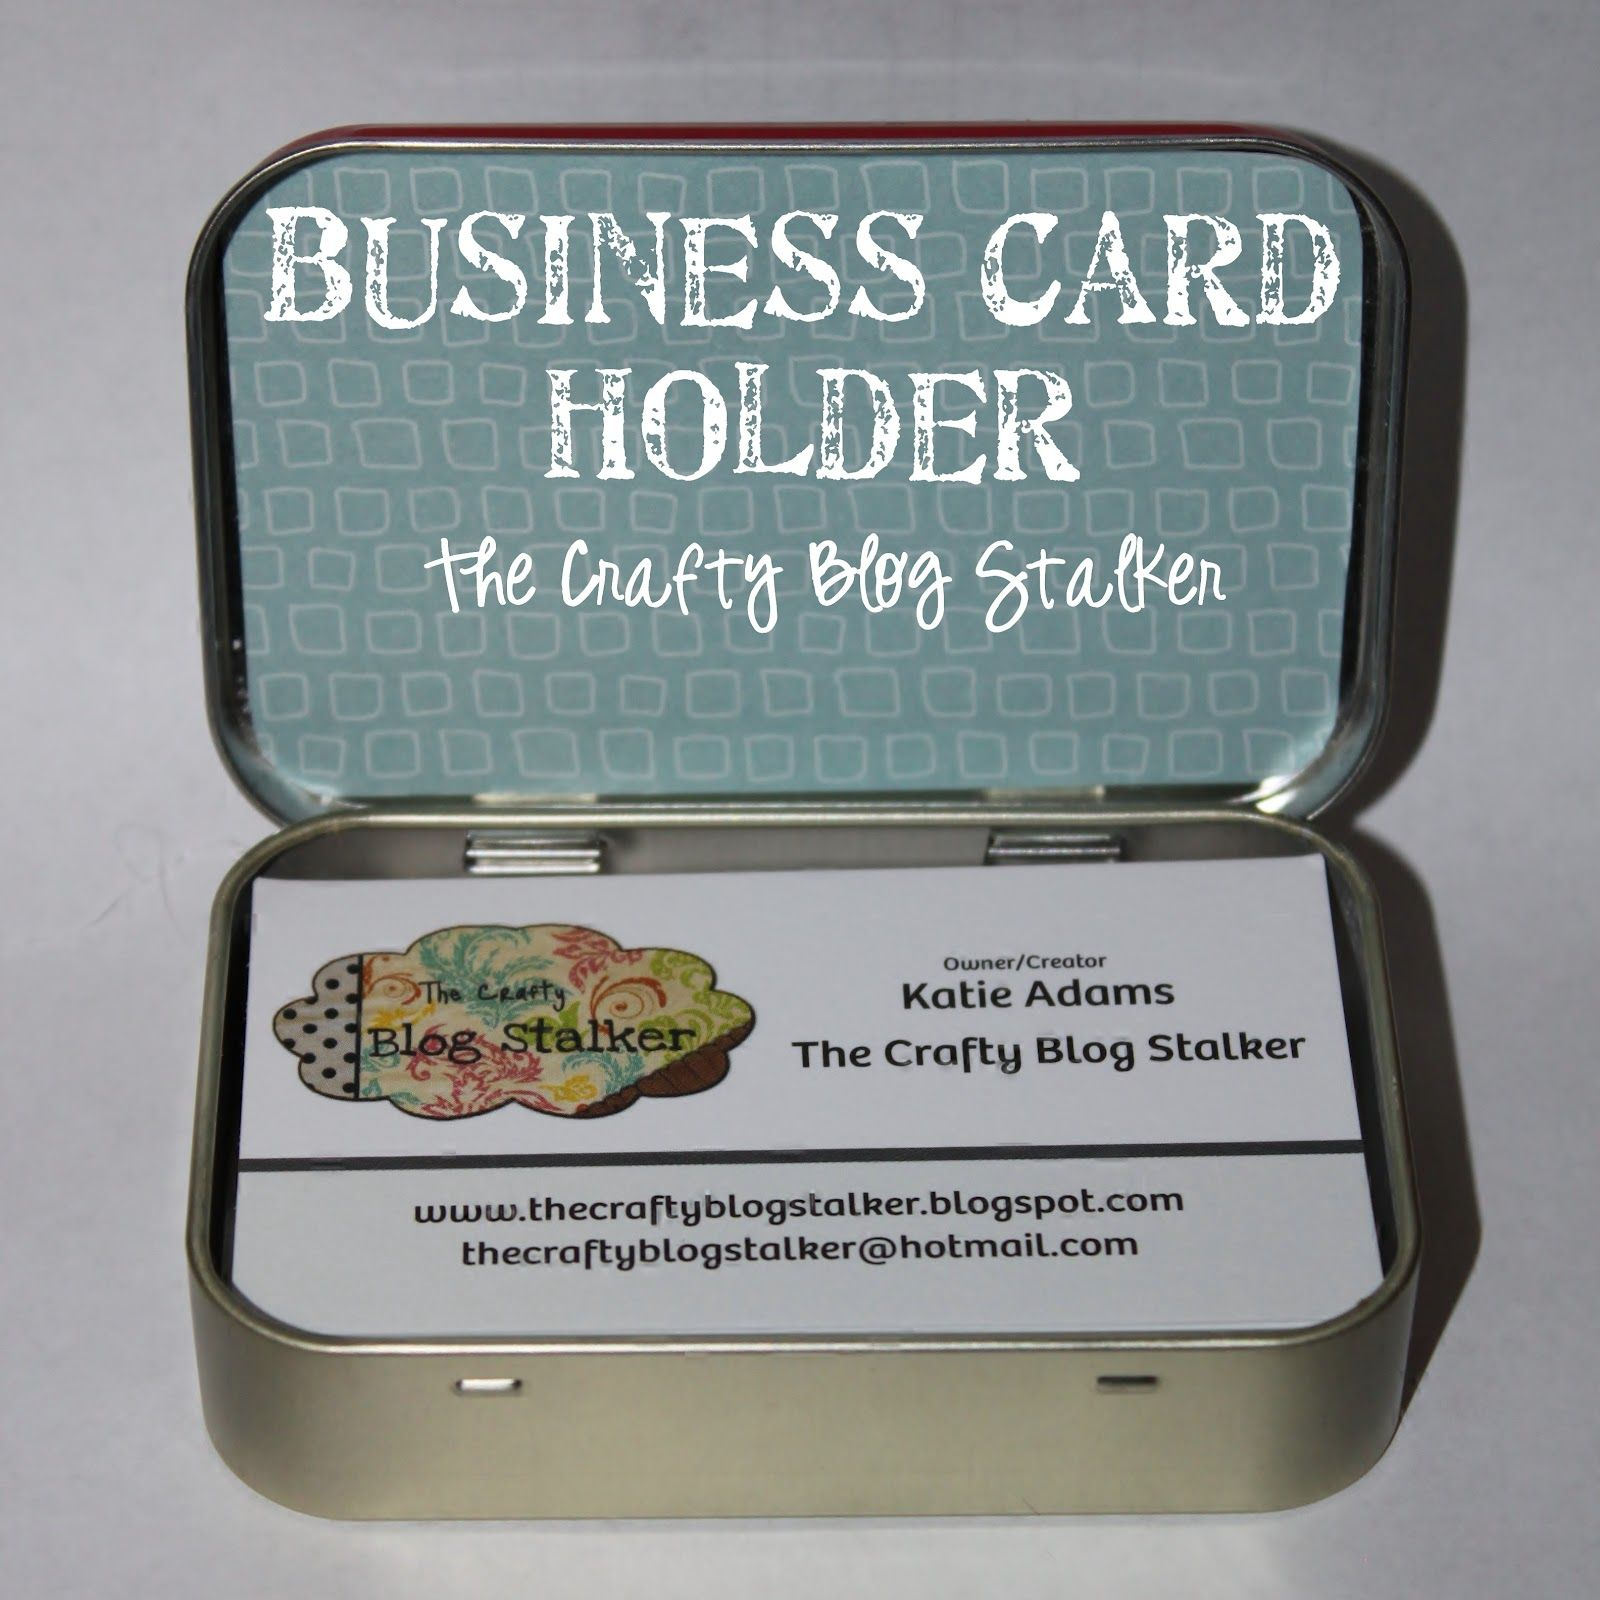 How to Make Business Card Holder with an Altoids Tin | Business card ...